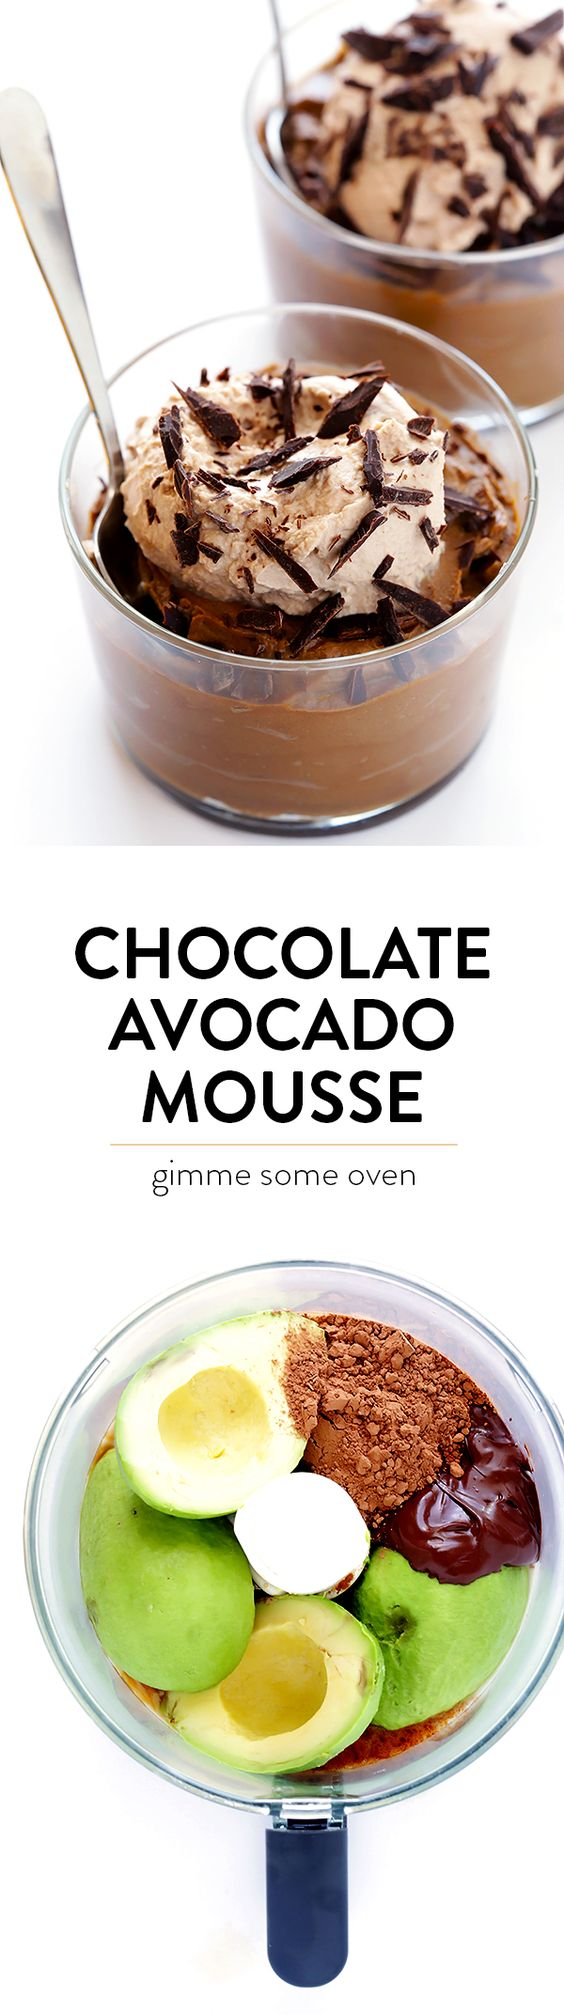 Avocado mousse, Chocolate avocado mousse and Mousse on Pinterest